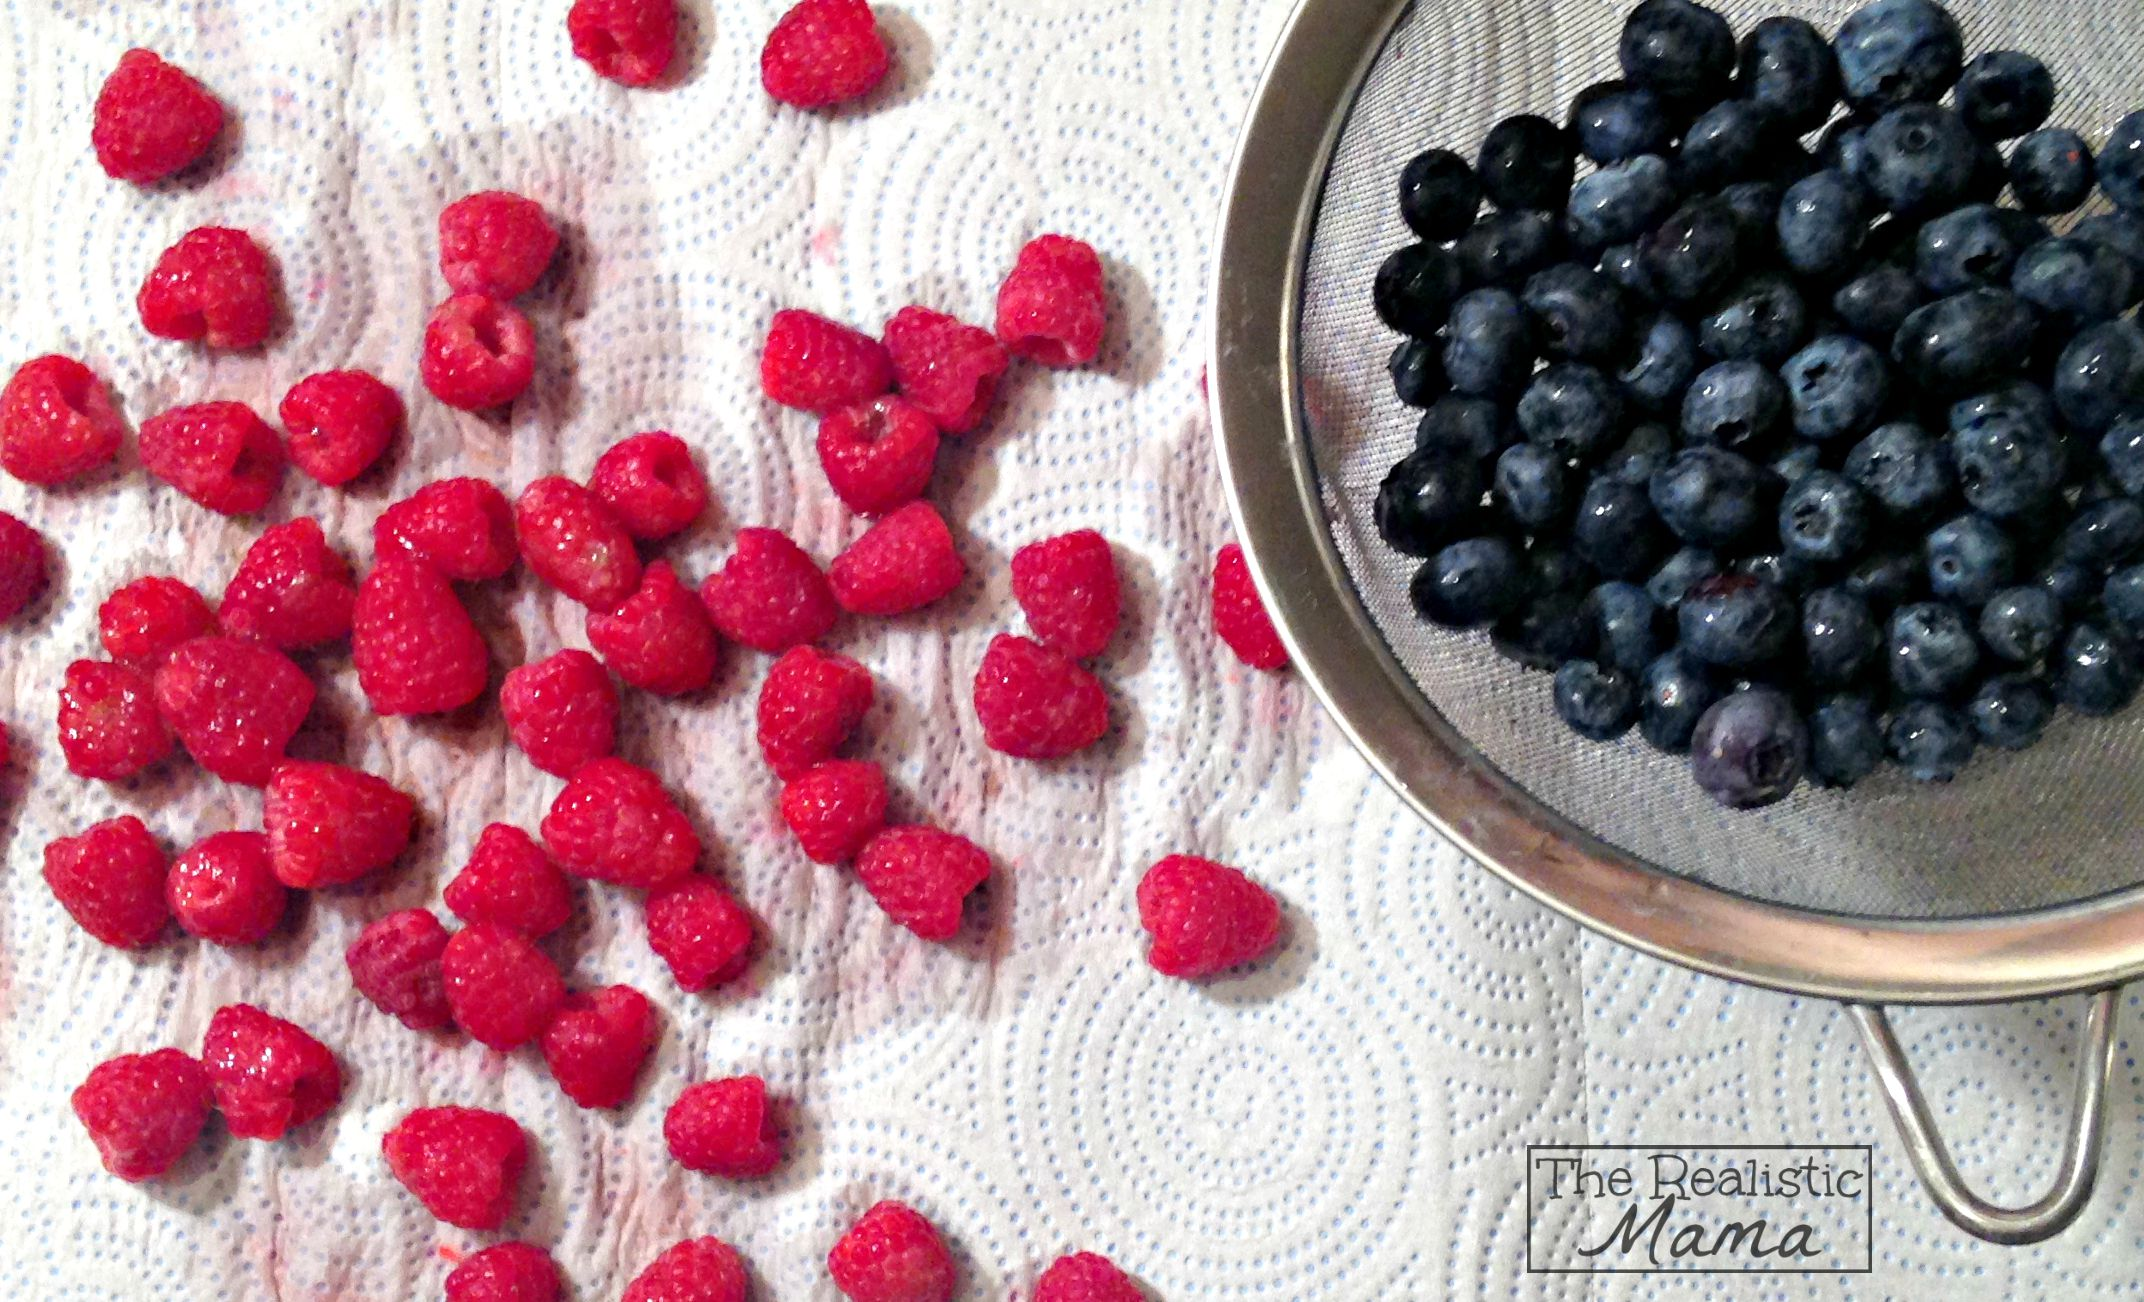 Yum! Washed Berries